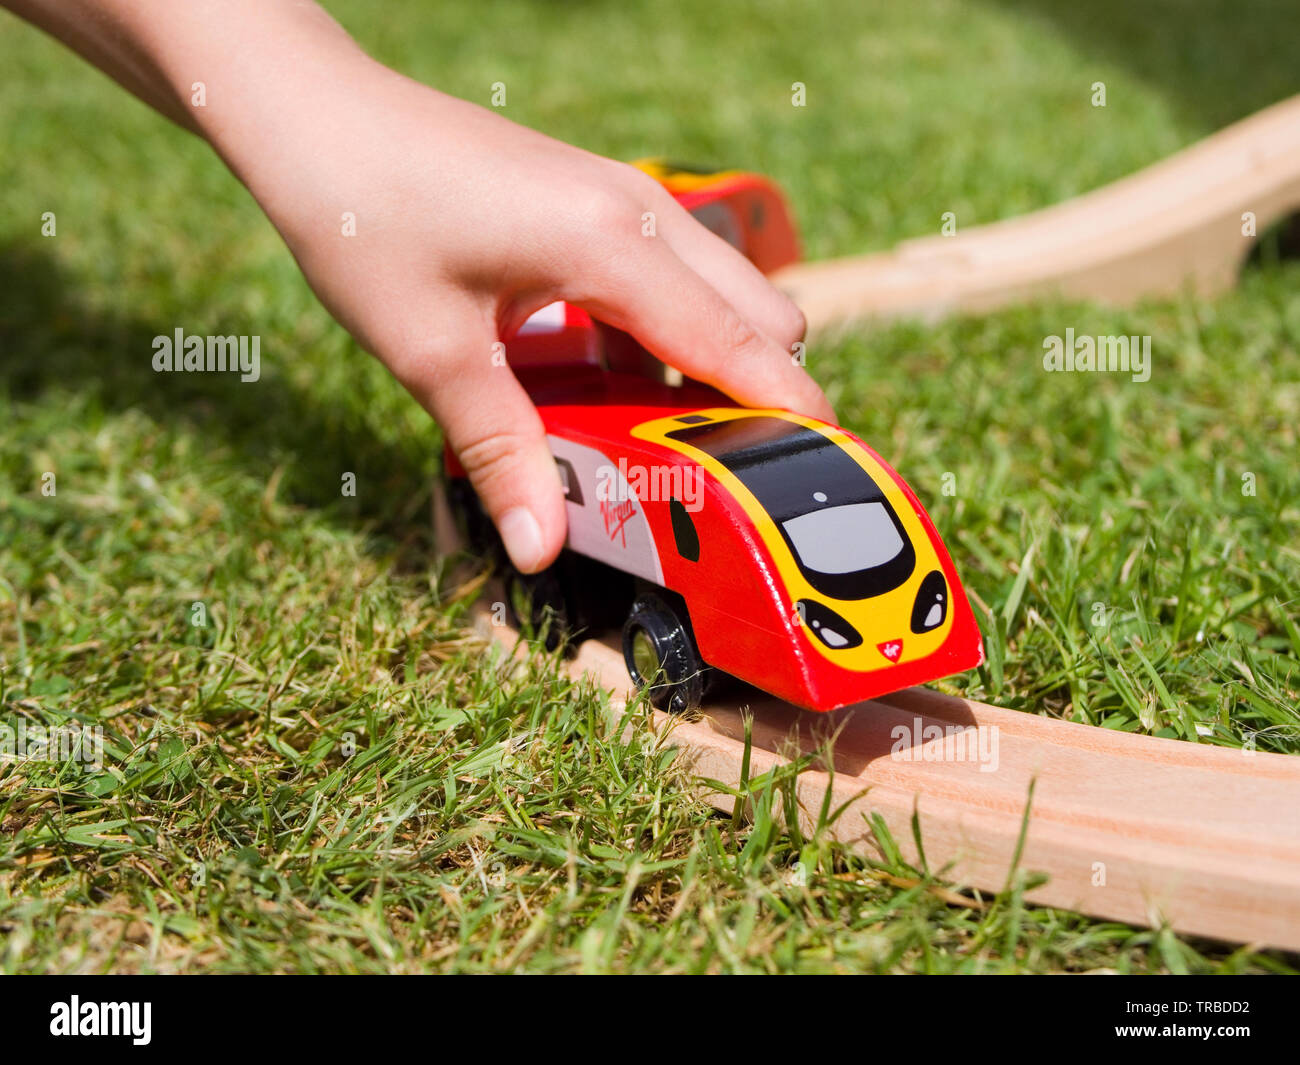 Child Playing with a Wooden Toy Brio-style Virgin Pendolino Train Stock Photo